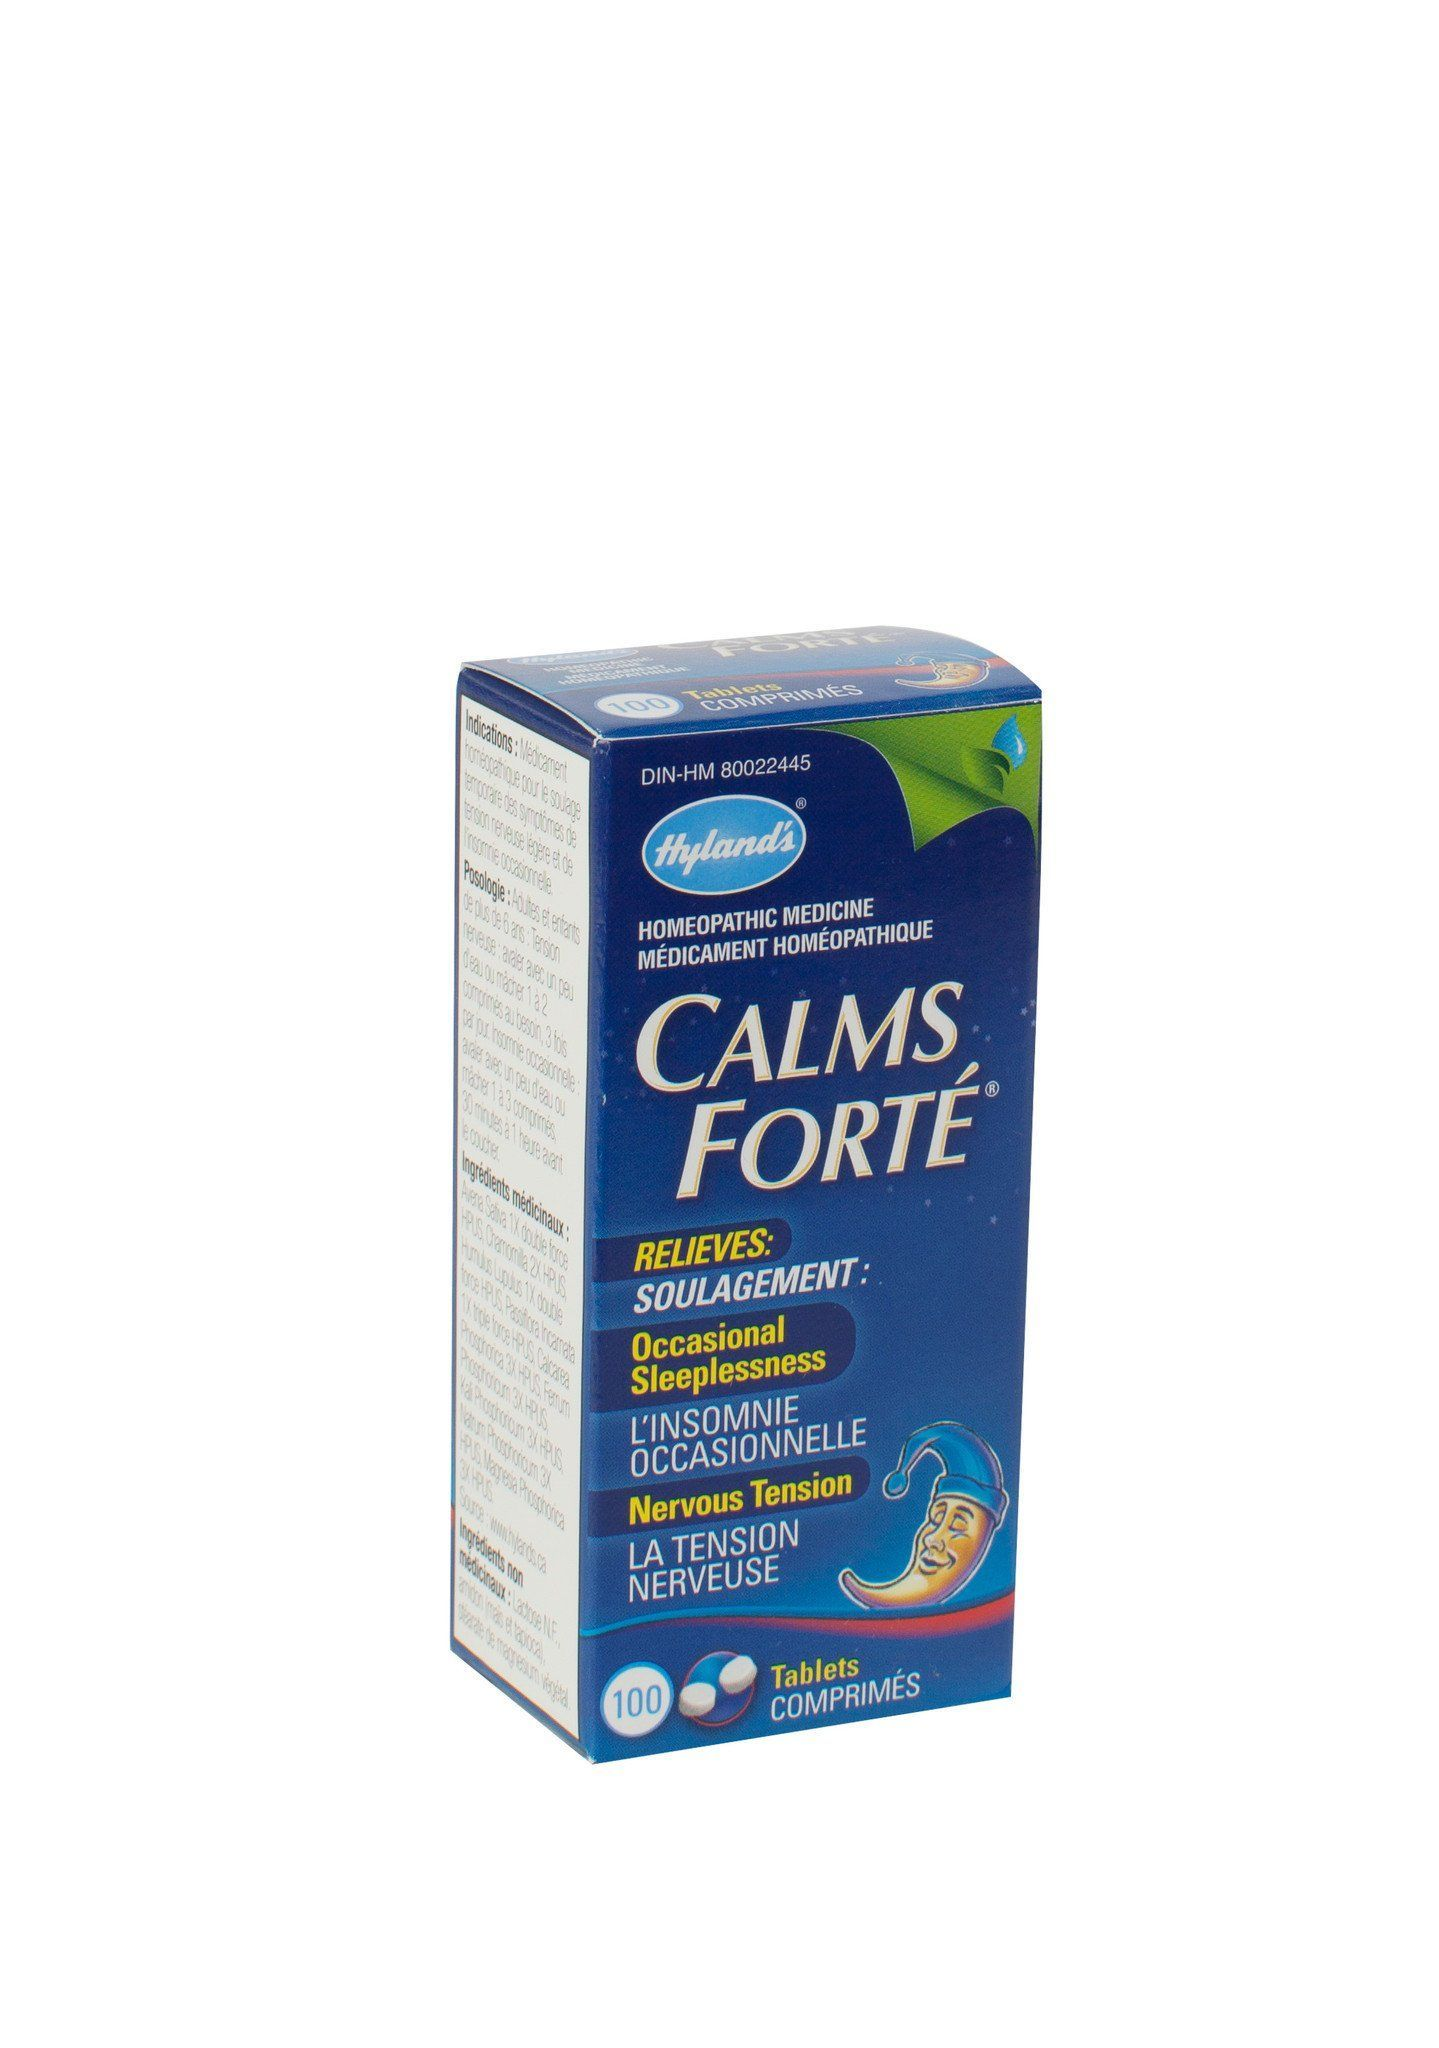 Supplements & Vitamins - Hyland's - Calms Forte, 100 Tabs